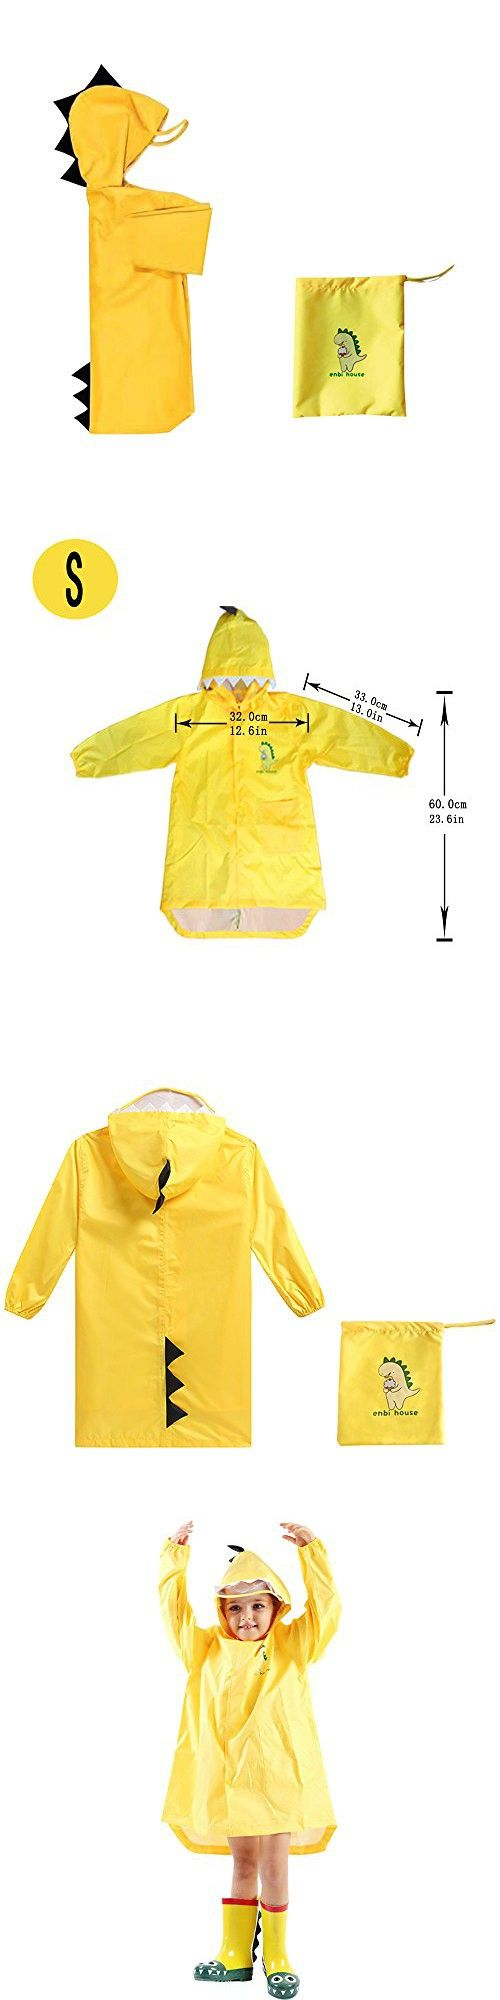 Doubmall Raincoat for Kids Rain Jacket Age 2-5 Cute Dinosaur Shaped Child's Funny Lightweight Outdoor Cartoon Rain Wear Slicker for Boys for Girls[S Size]